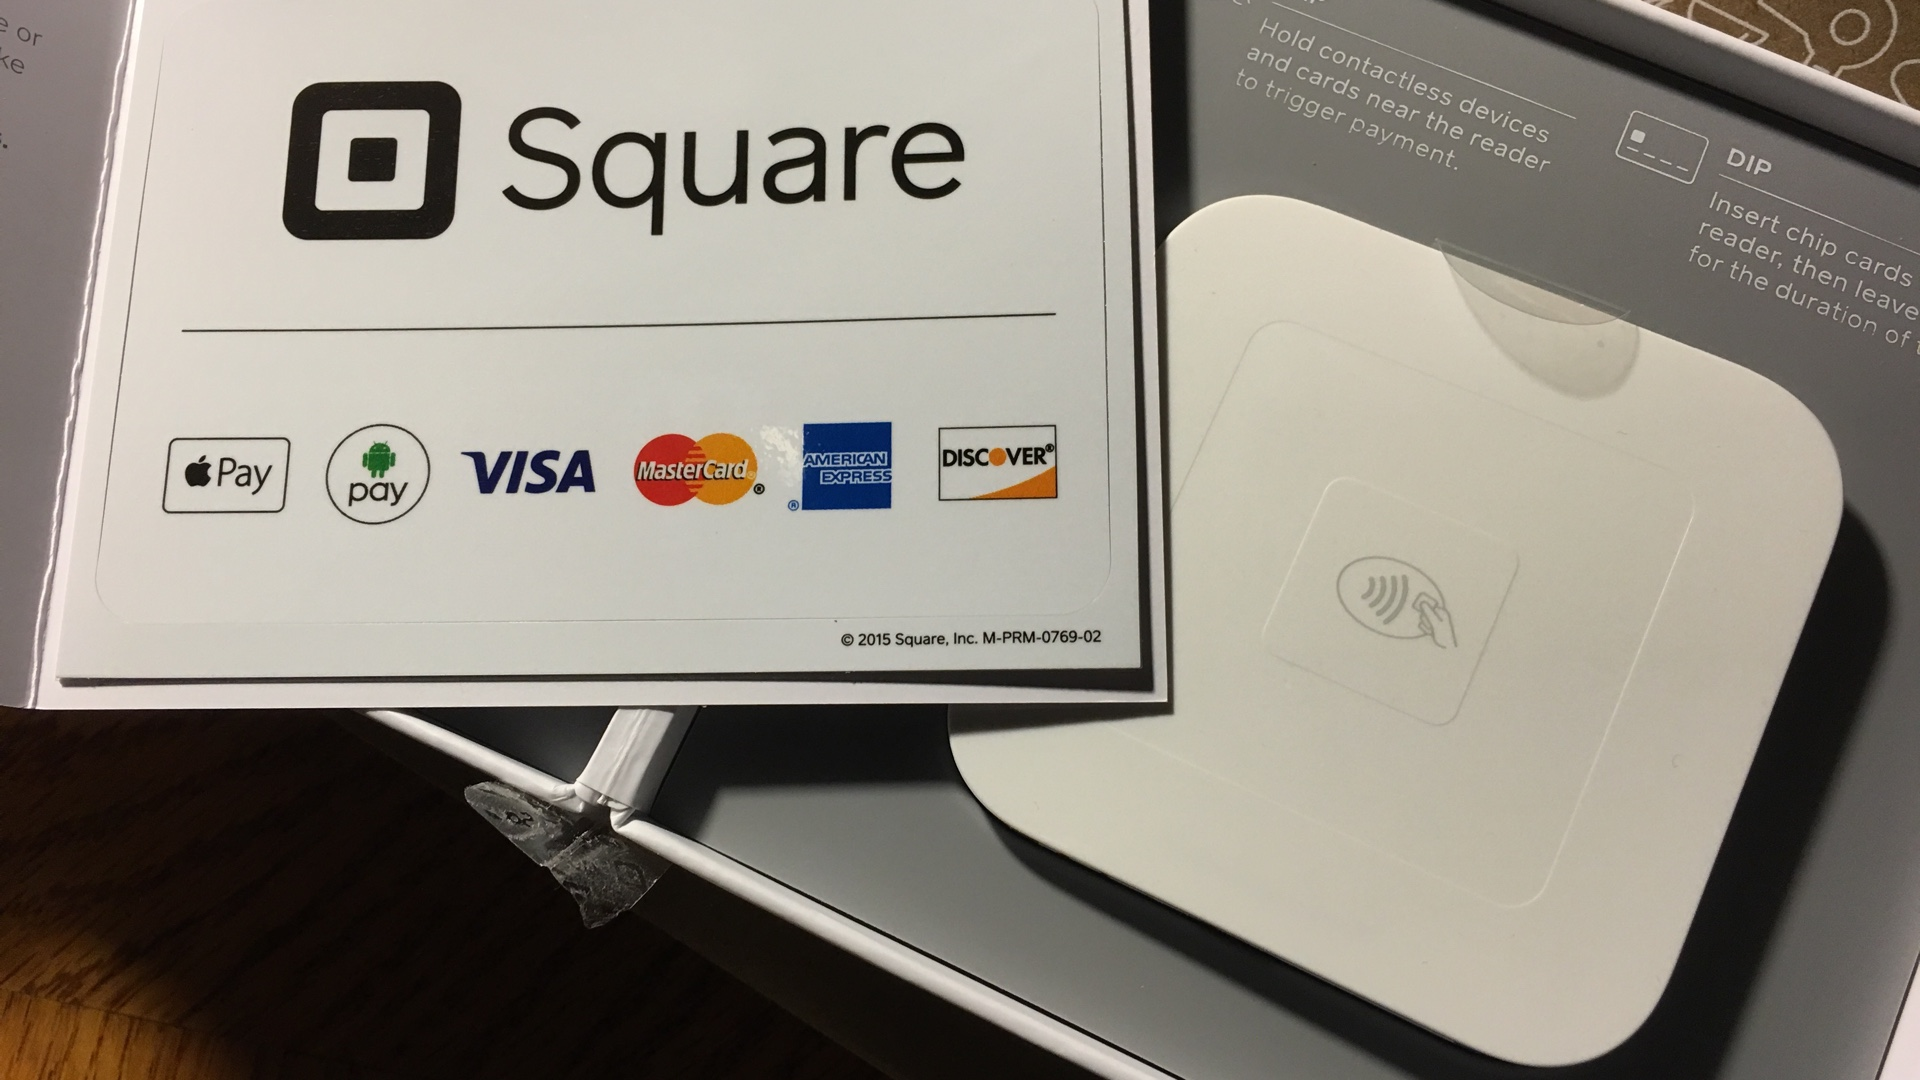 Square Contactless and Chip Reader with Apple Pay